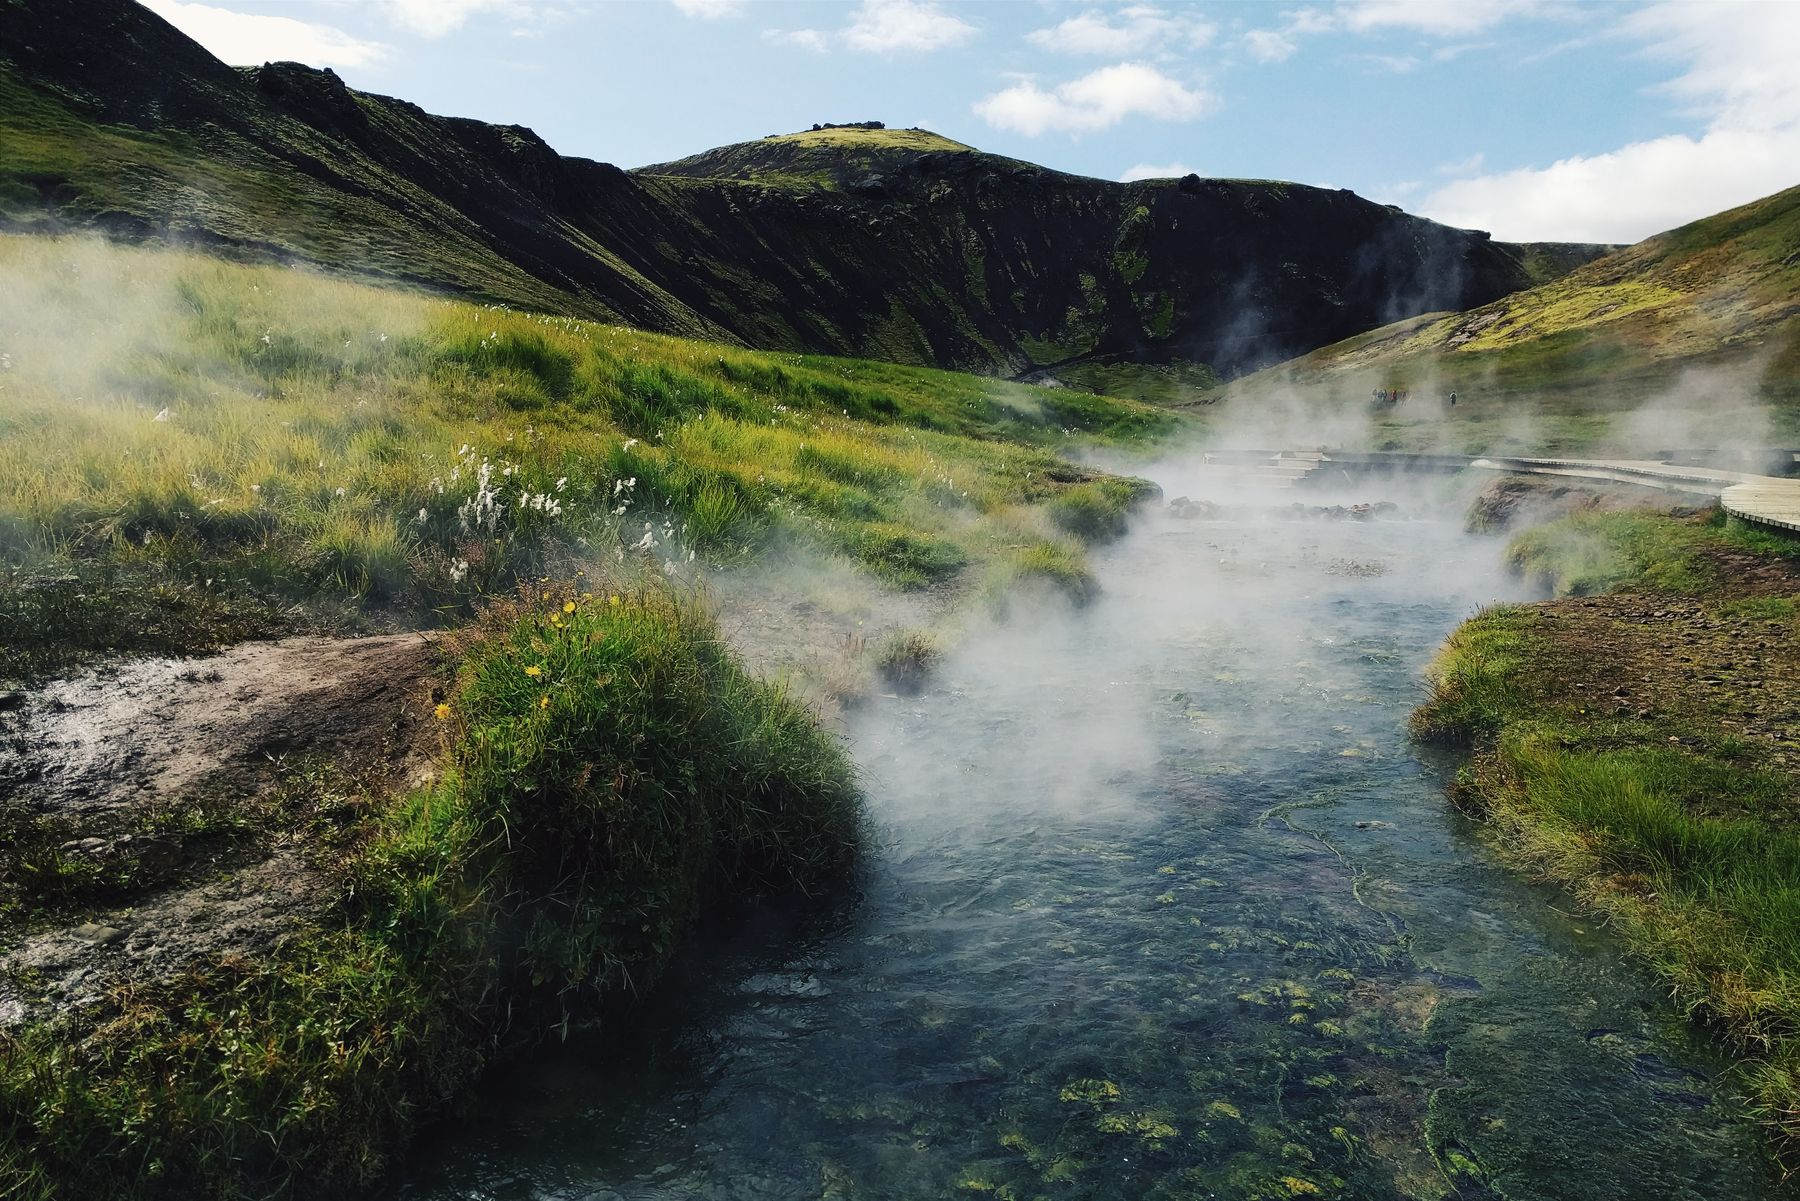 Steam rising off a river in Iceland, surrounded by bright green mossy grass with hills in the background